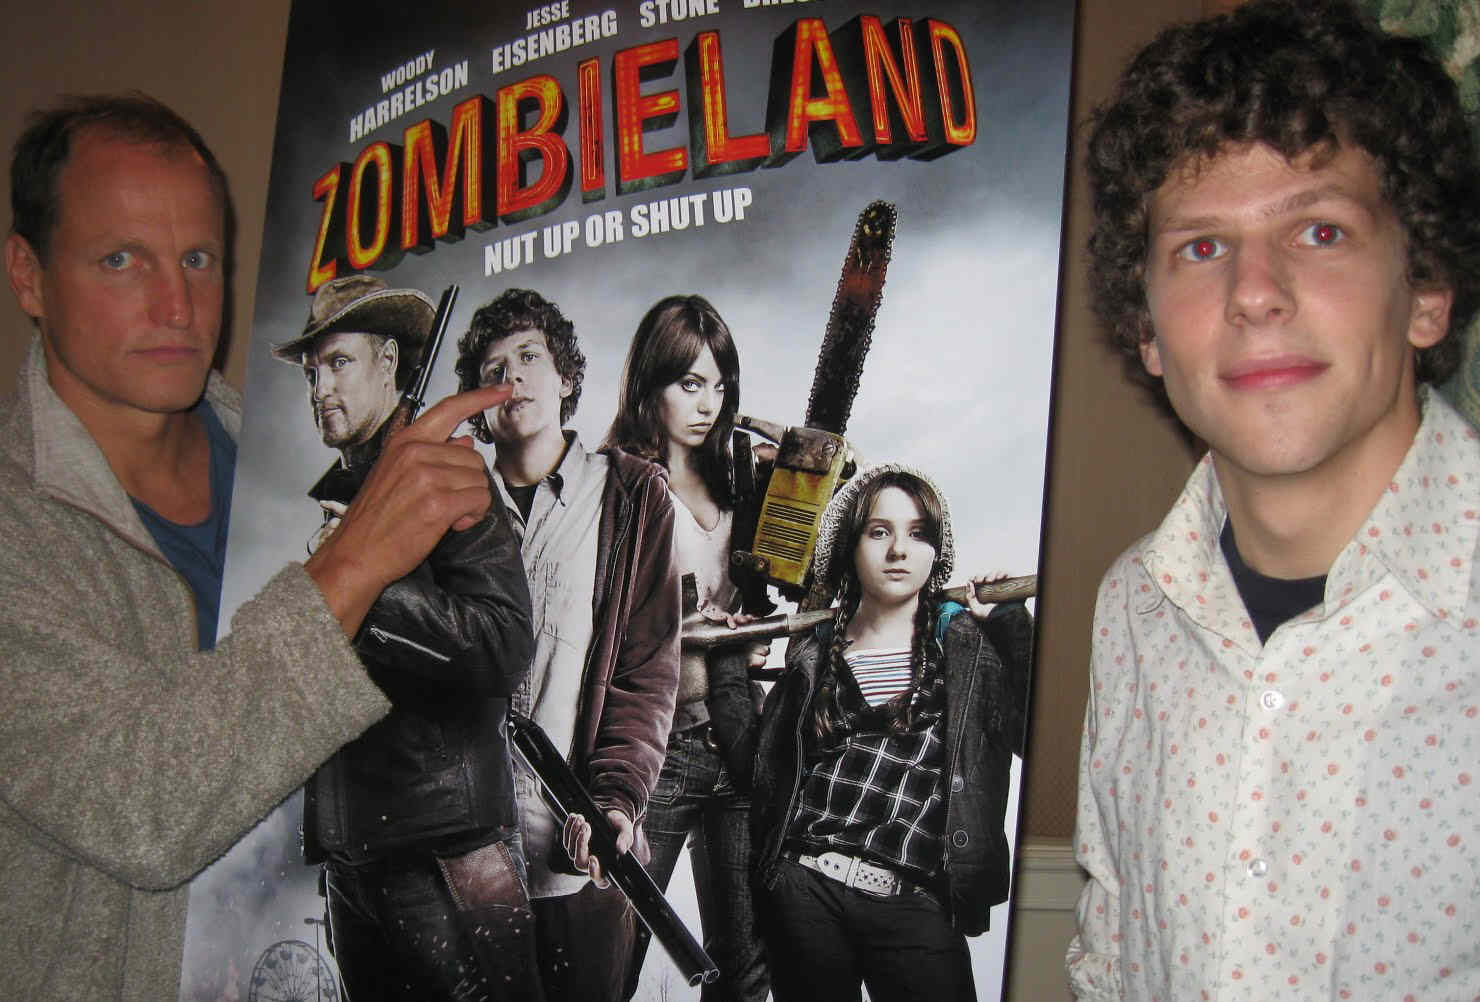 Woody Harrelson and Jesse Eisenberg - stars of 'Zombieland.'